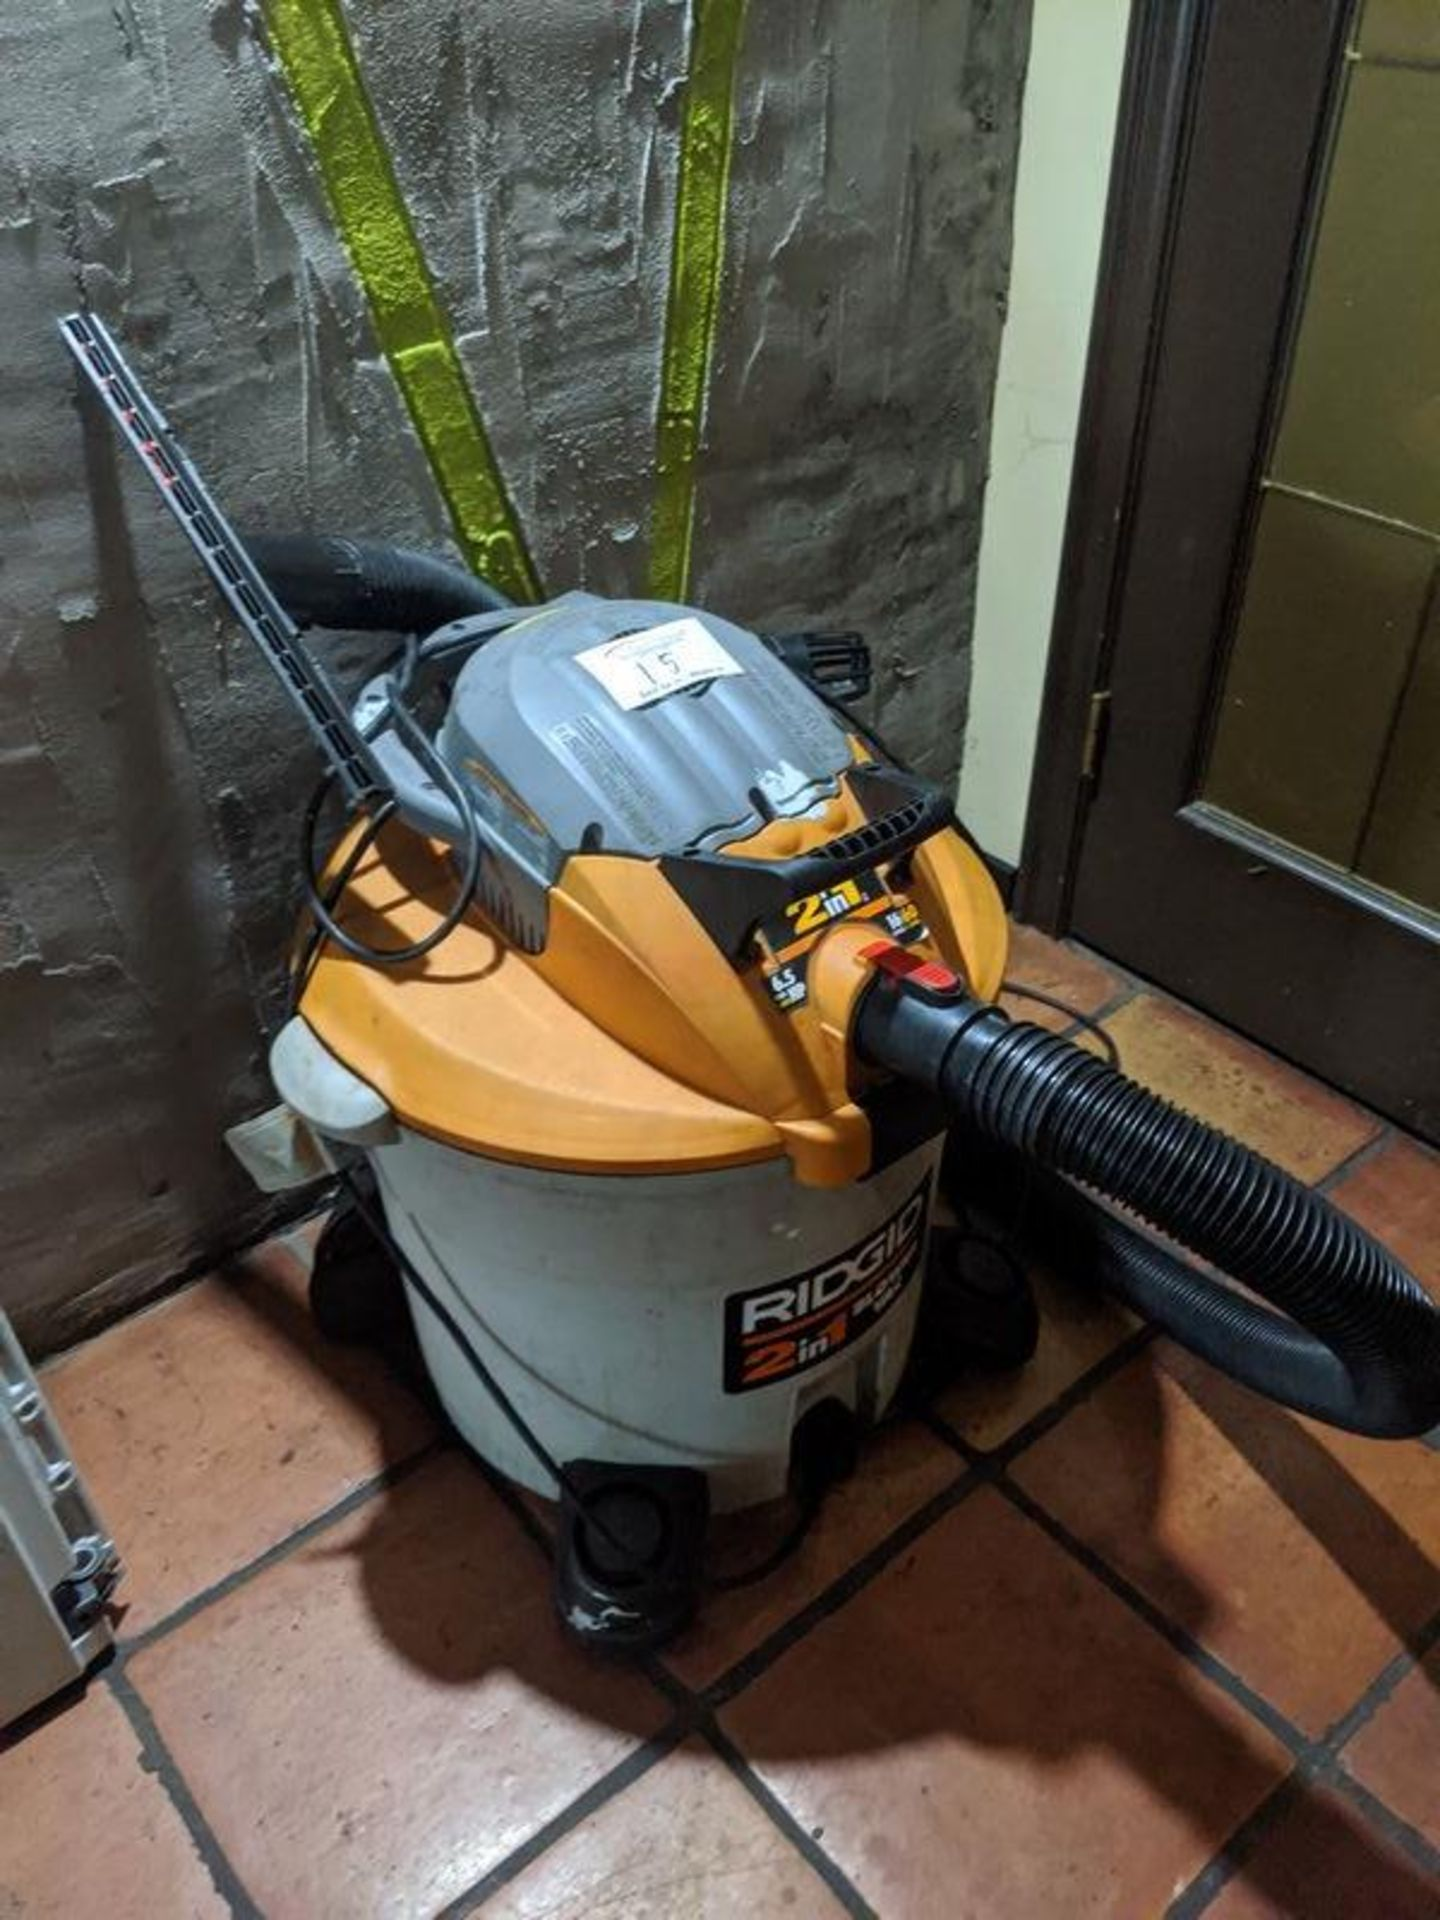 Lot 15 - Rigid Shop Vac